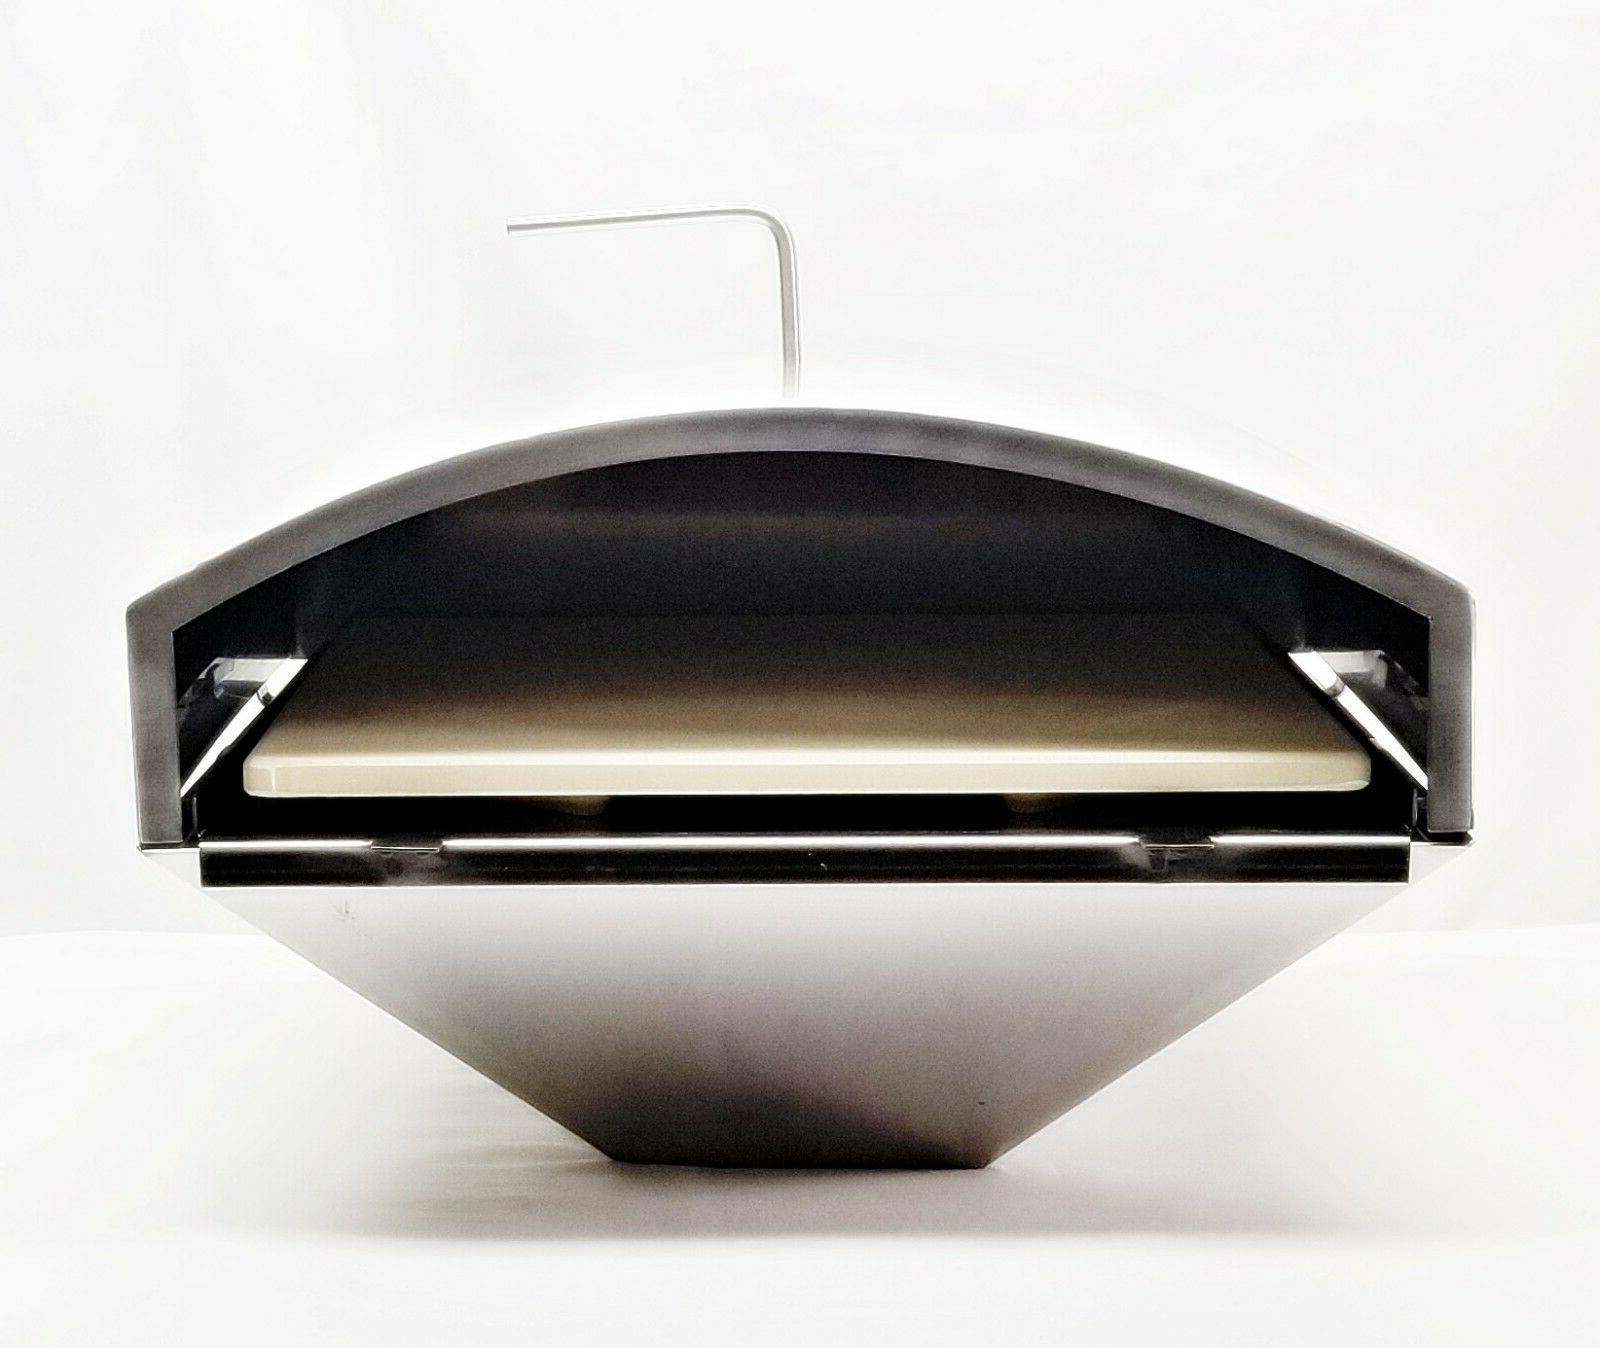 gmg pellet grill pizza oven attachment db